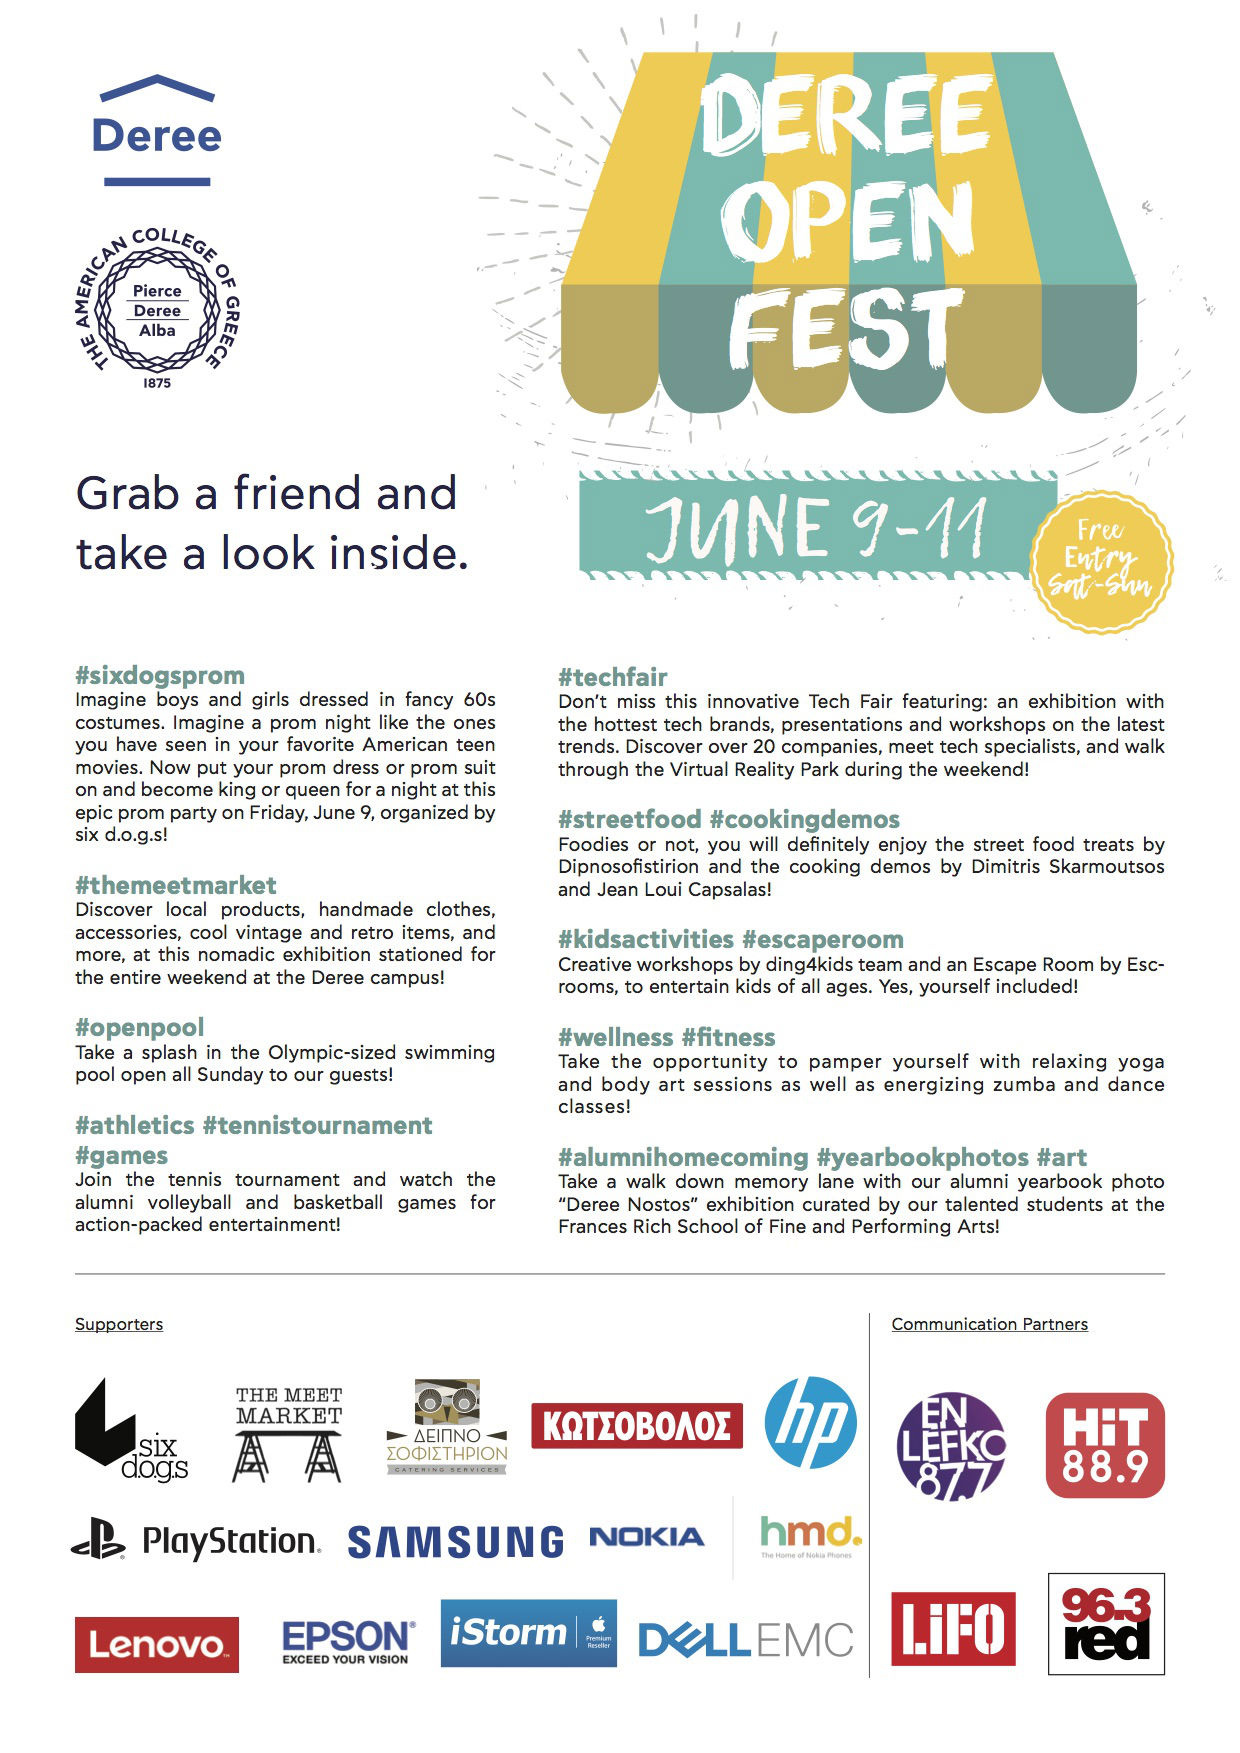 Deree Open Fest_Poster A4_updated-w1800